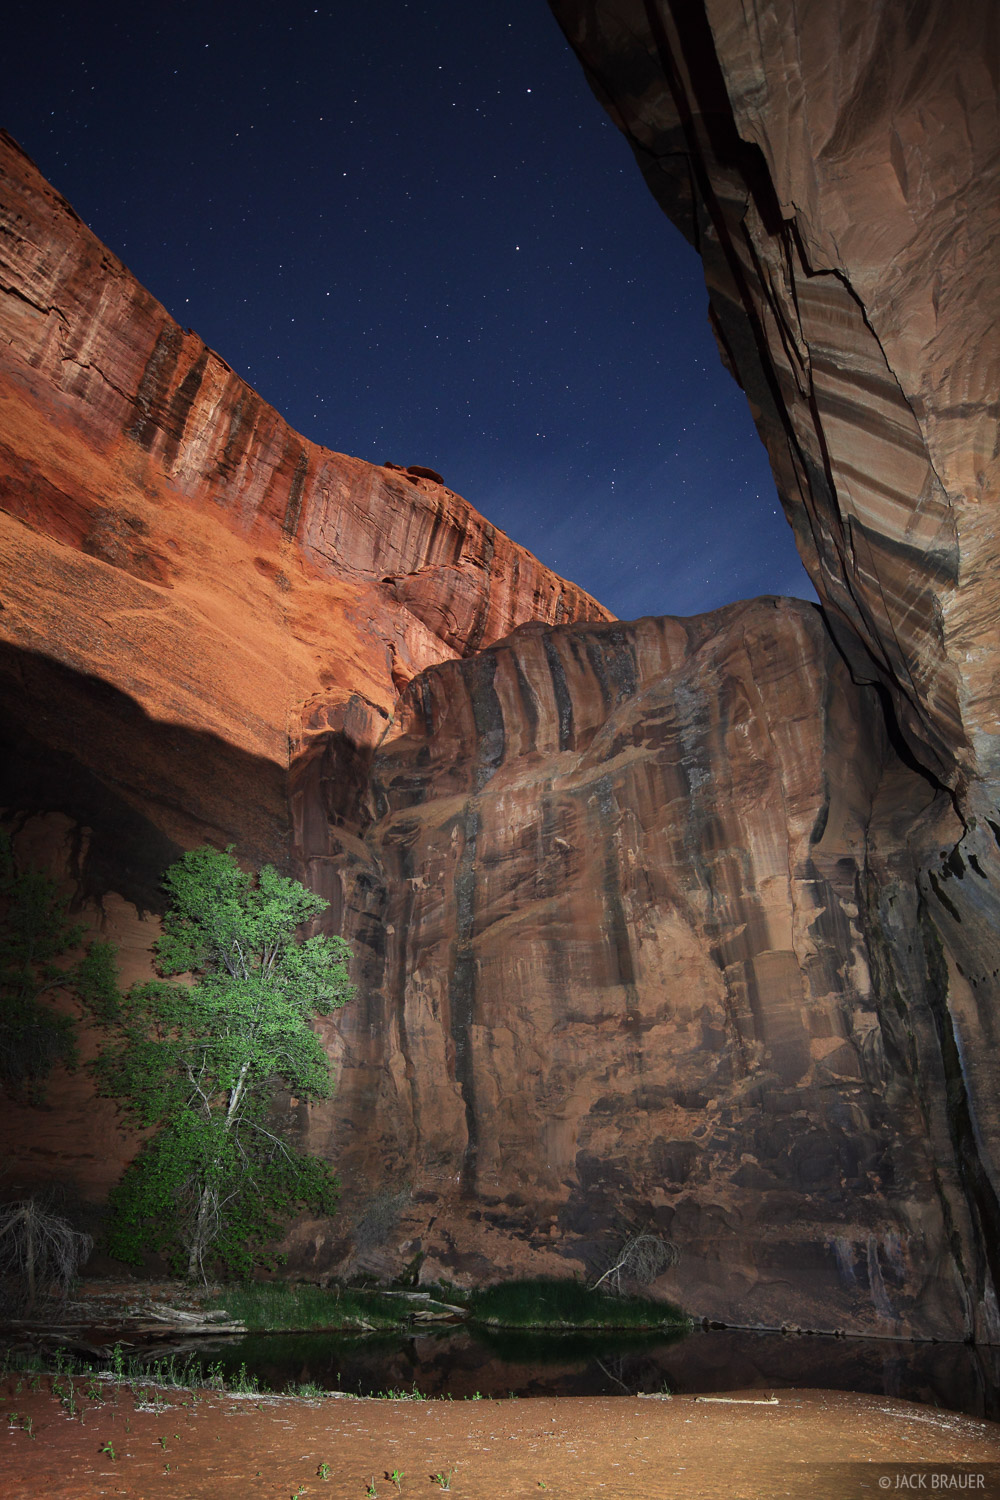 moonlight, flashlight painting, Canyon, Escalante, Utah, Grand Staircase-Escalante National Monument, photo